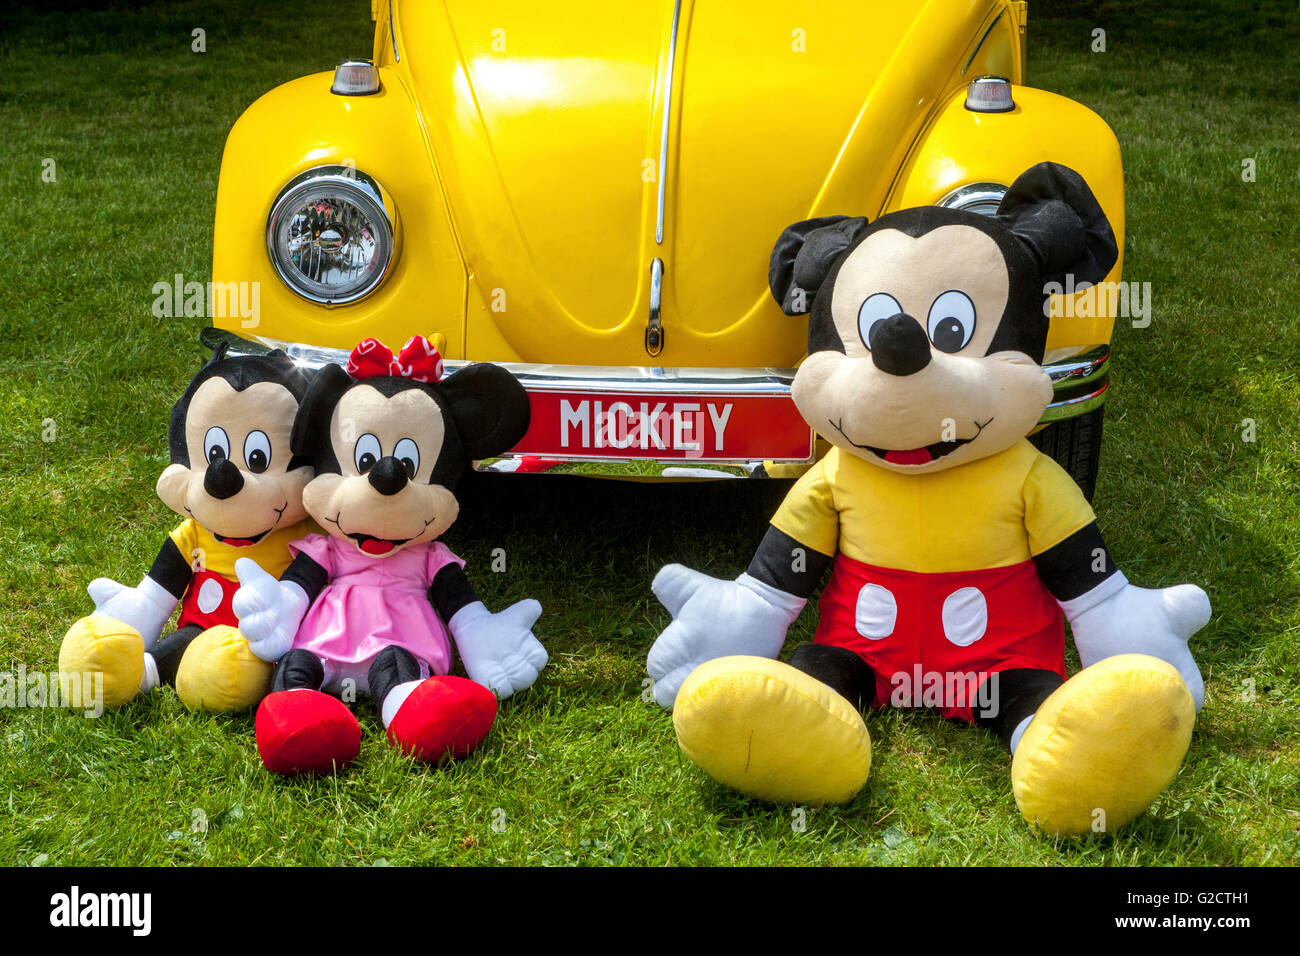 Yellow VW Beetle and Mickey Mouse family - Stock Image